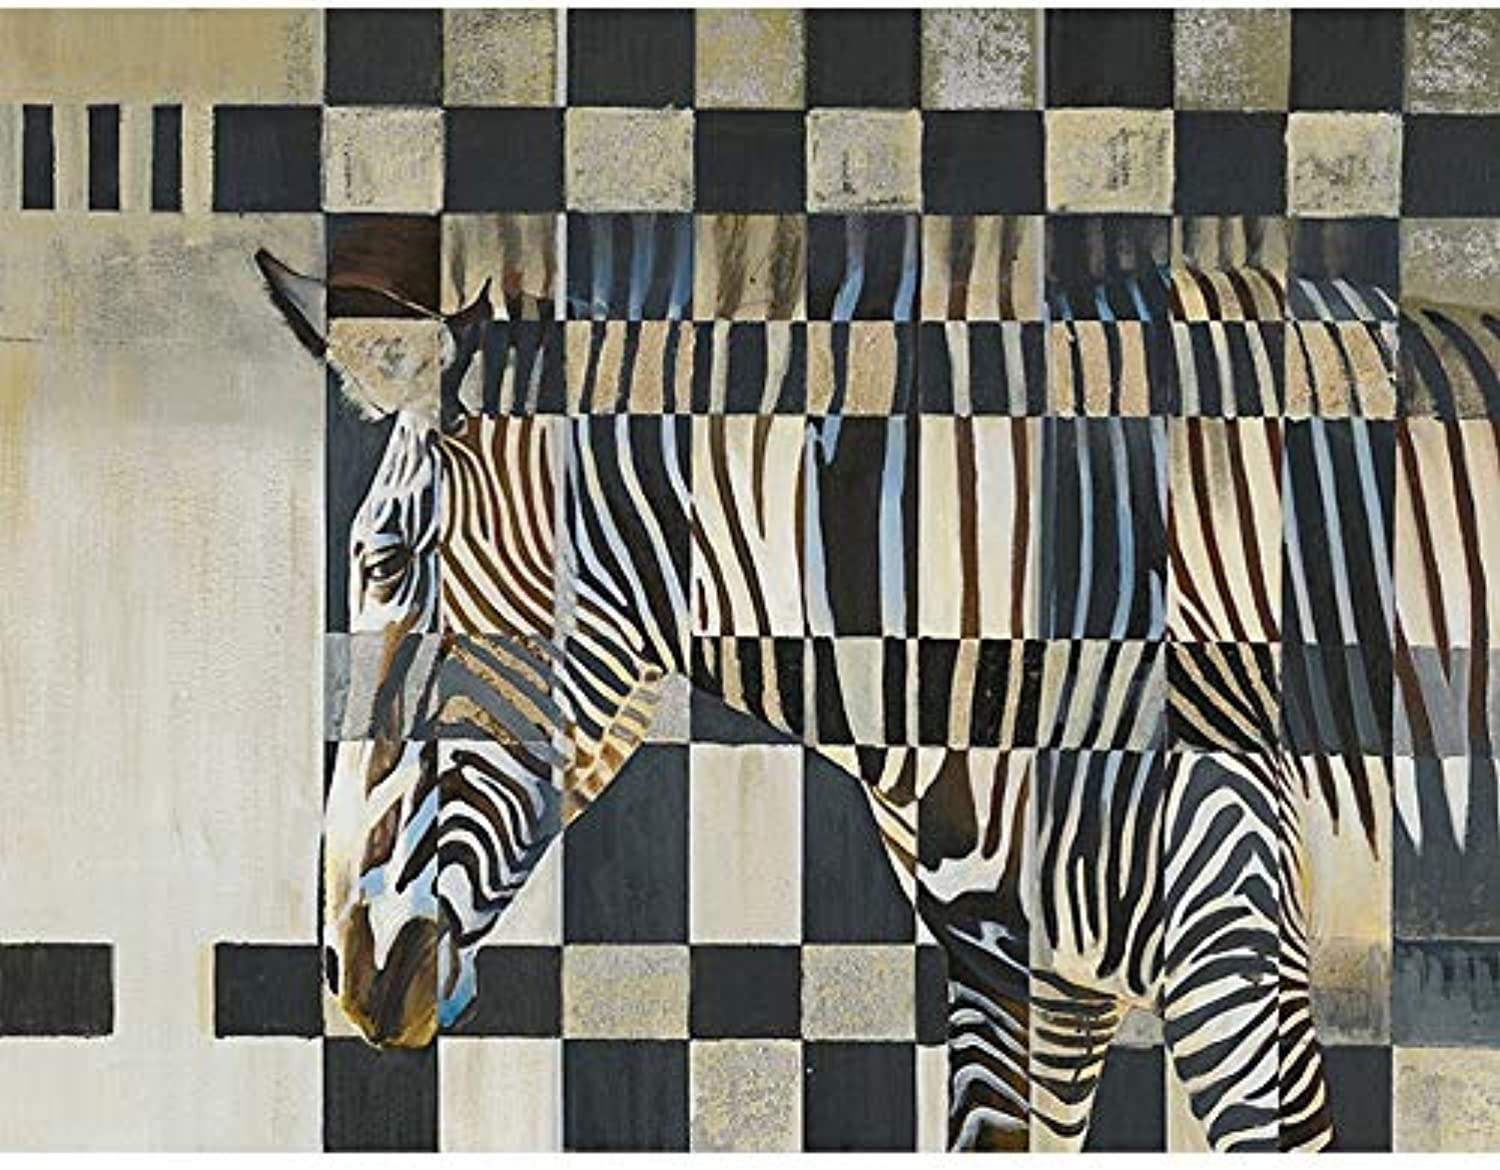 Contemporary Zebra Oil Painting ON Canvas Hanging Screen Sign Timber 0 80X60CM